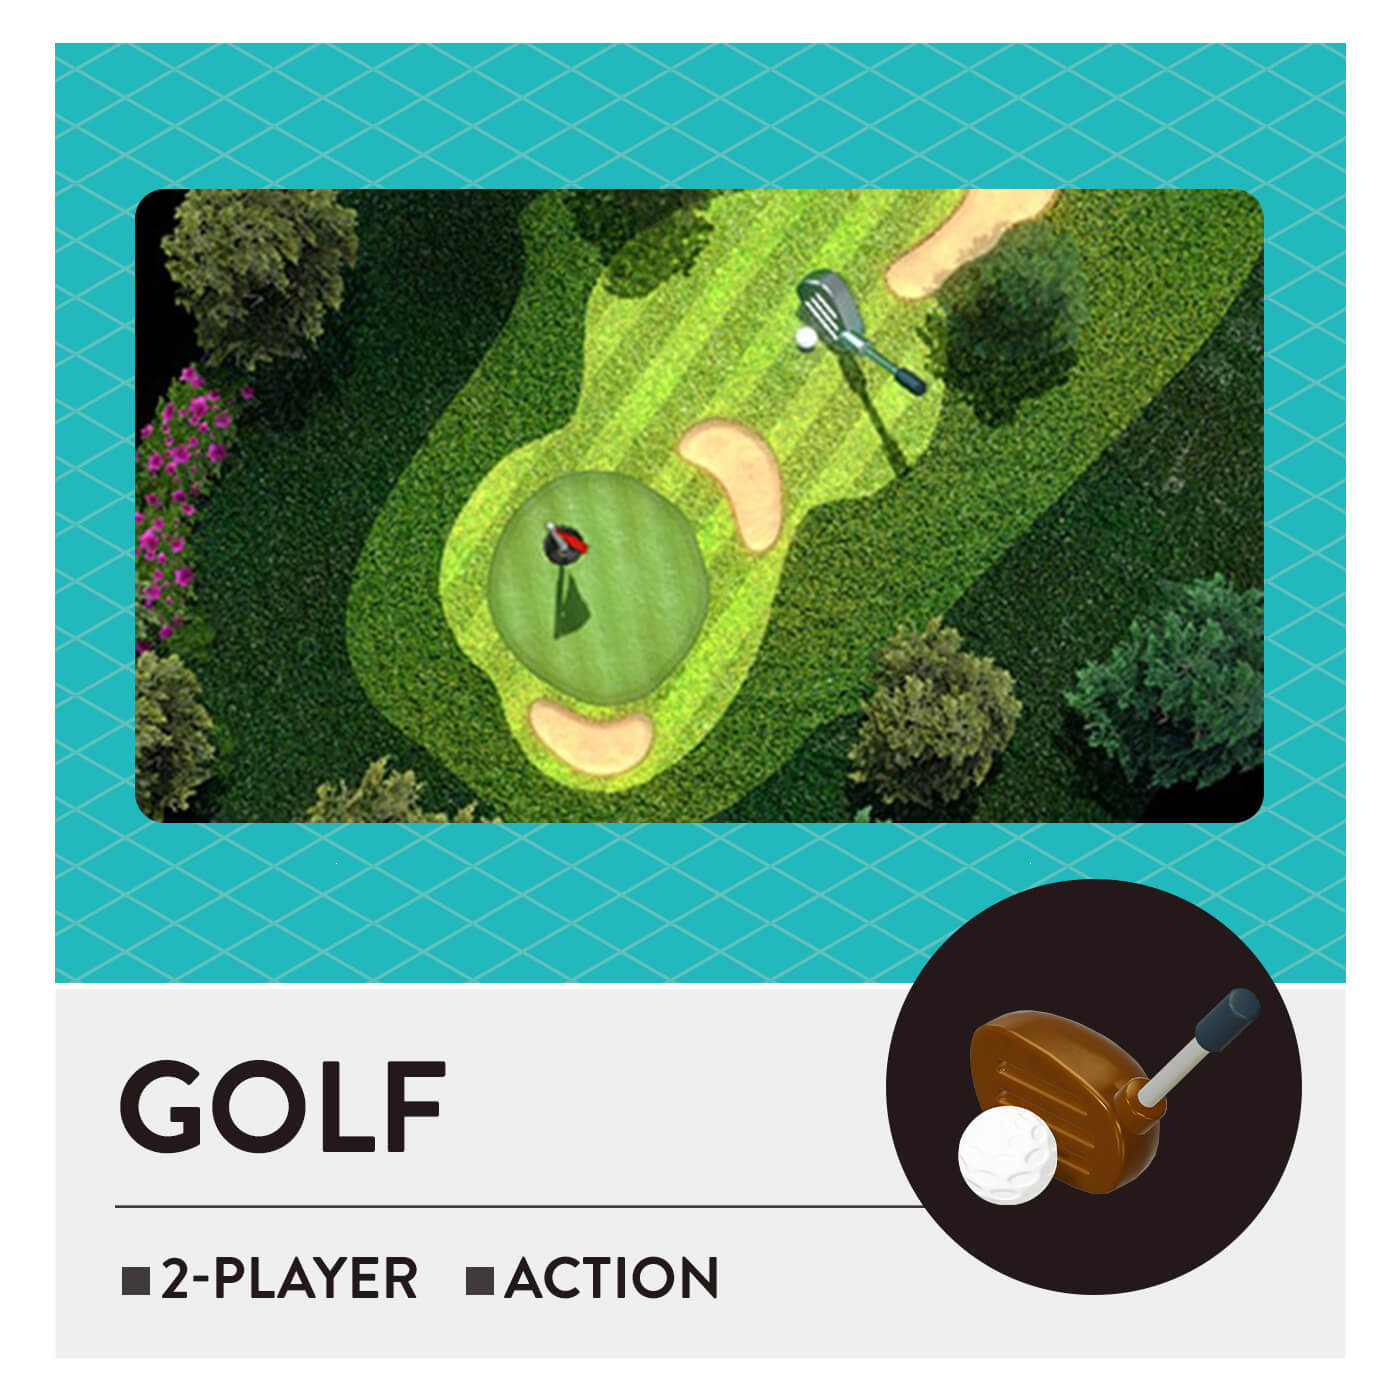 51 Worldwide Games - Golf